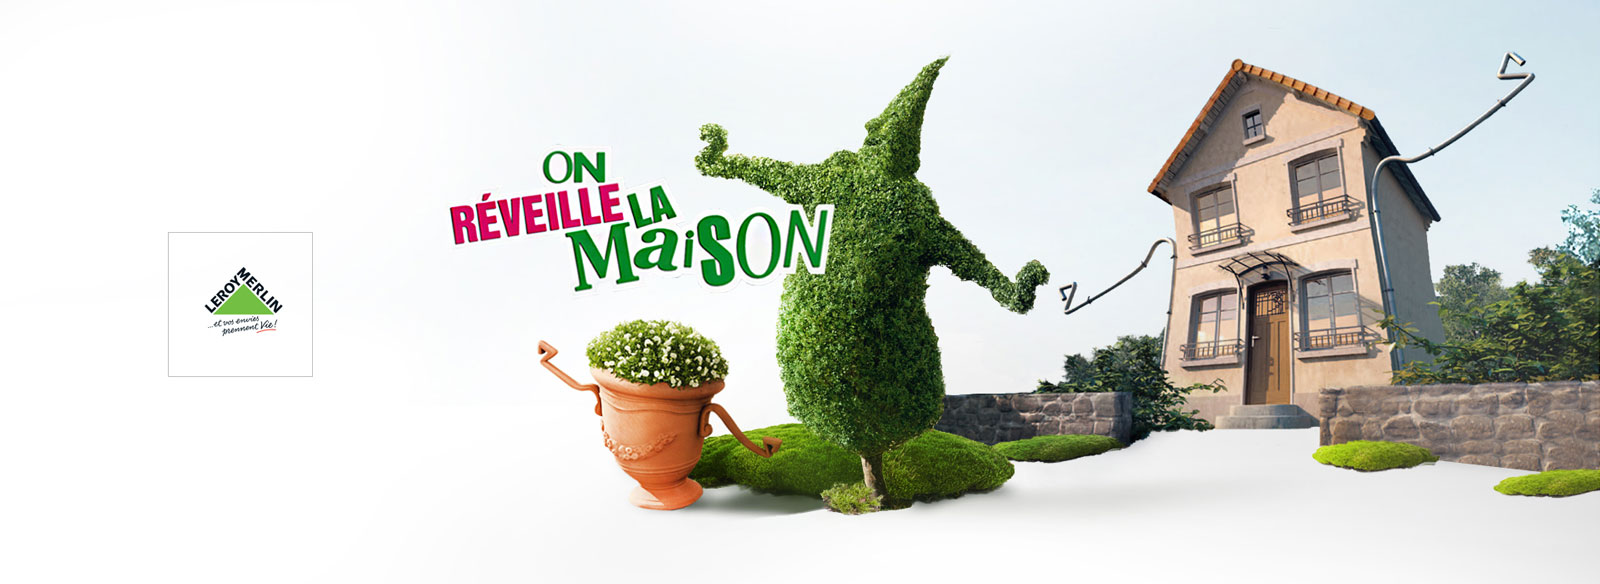 Leroy Merlin - On réveille la maison